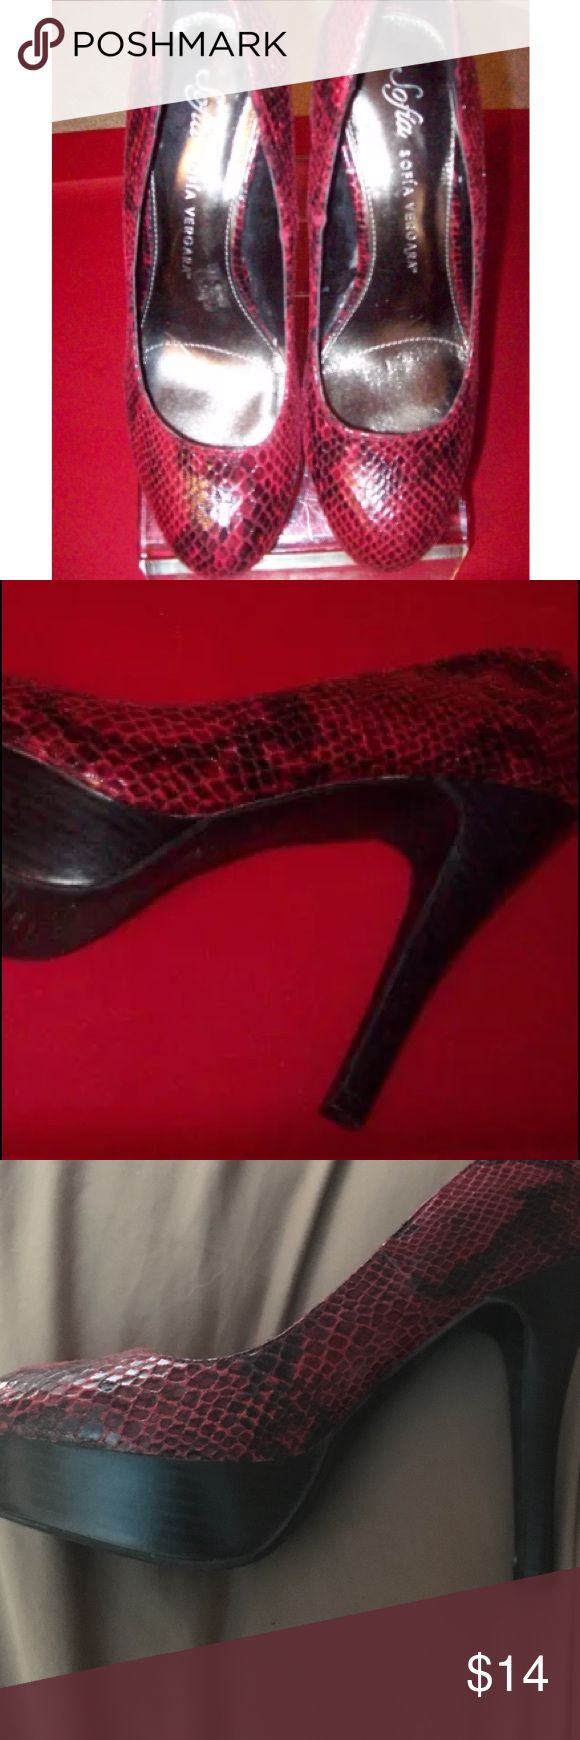 "BLOWOUT HOLIDAY SALE‼️Sofia  Vergara Heels Size8.5 STYLE:   SNAKE SKIN LOOK, 5"" HIGH,  PUMPS.  NEAR EXCELLENT CONDITION!  REFER TO PHOTOS.  AS I STATED, THEY HAVE ONLY BEEN WORN ONCE!    SIZE:  8.5 (U.S.)    WIDTH: MEDIUM    HEEL HEIGHT:  5 INCH  *STYLISH FOR WEARING WITH JEANS, PANTS, CAPRIS, SKIRTS, OR DRESSES!!   *GREAT FOR CLUB WEAR! Sofia Vergara Shoes Heels"